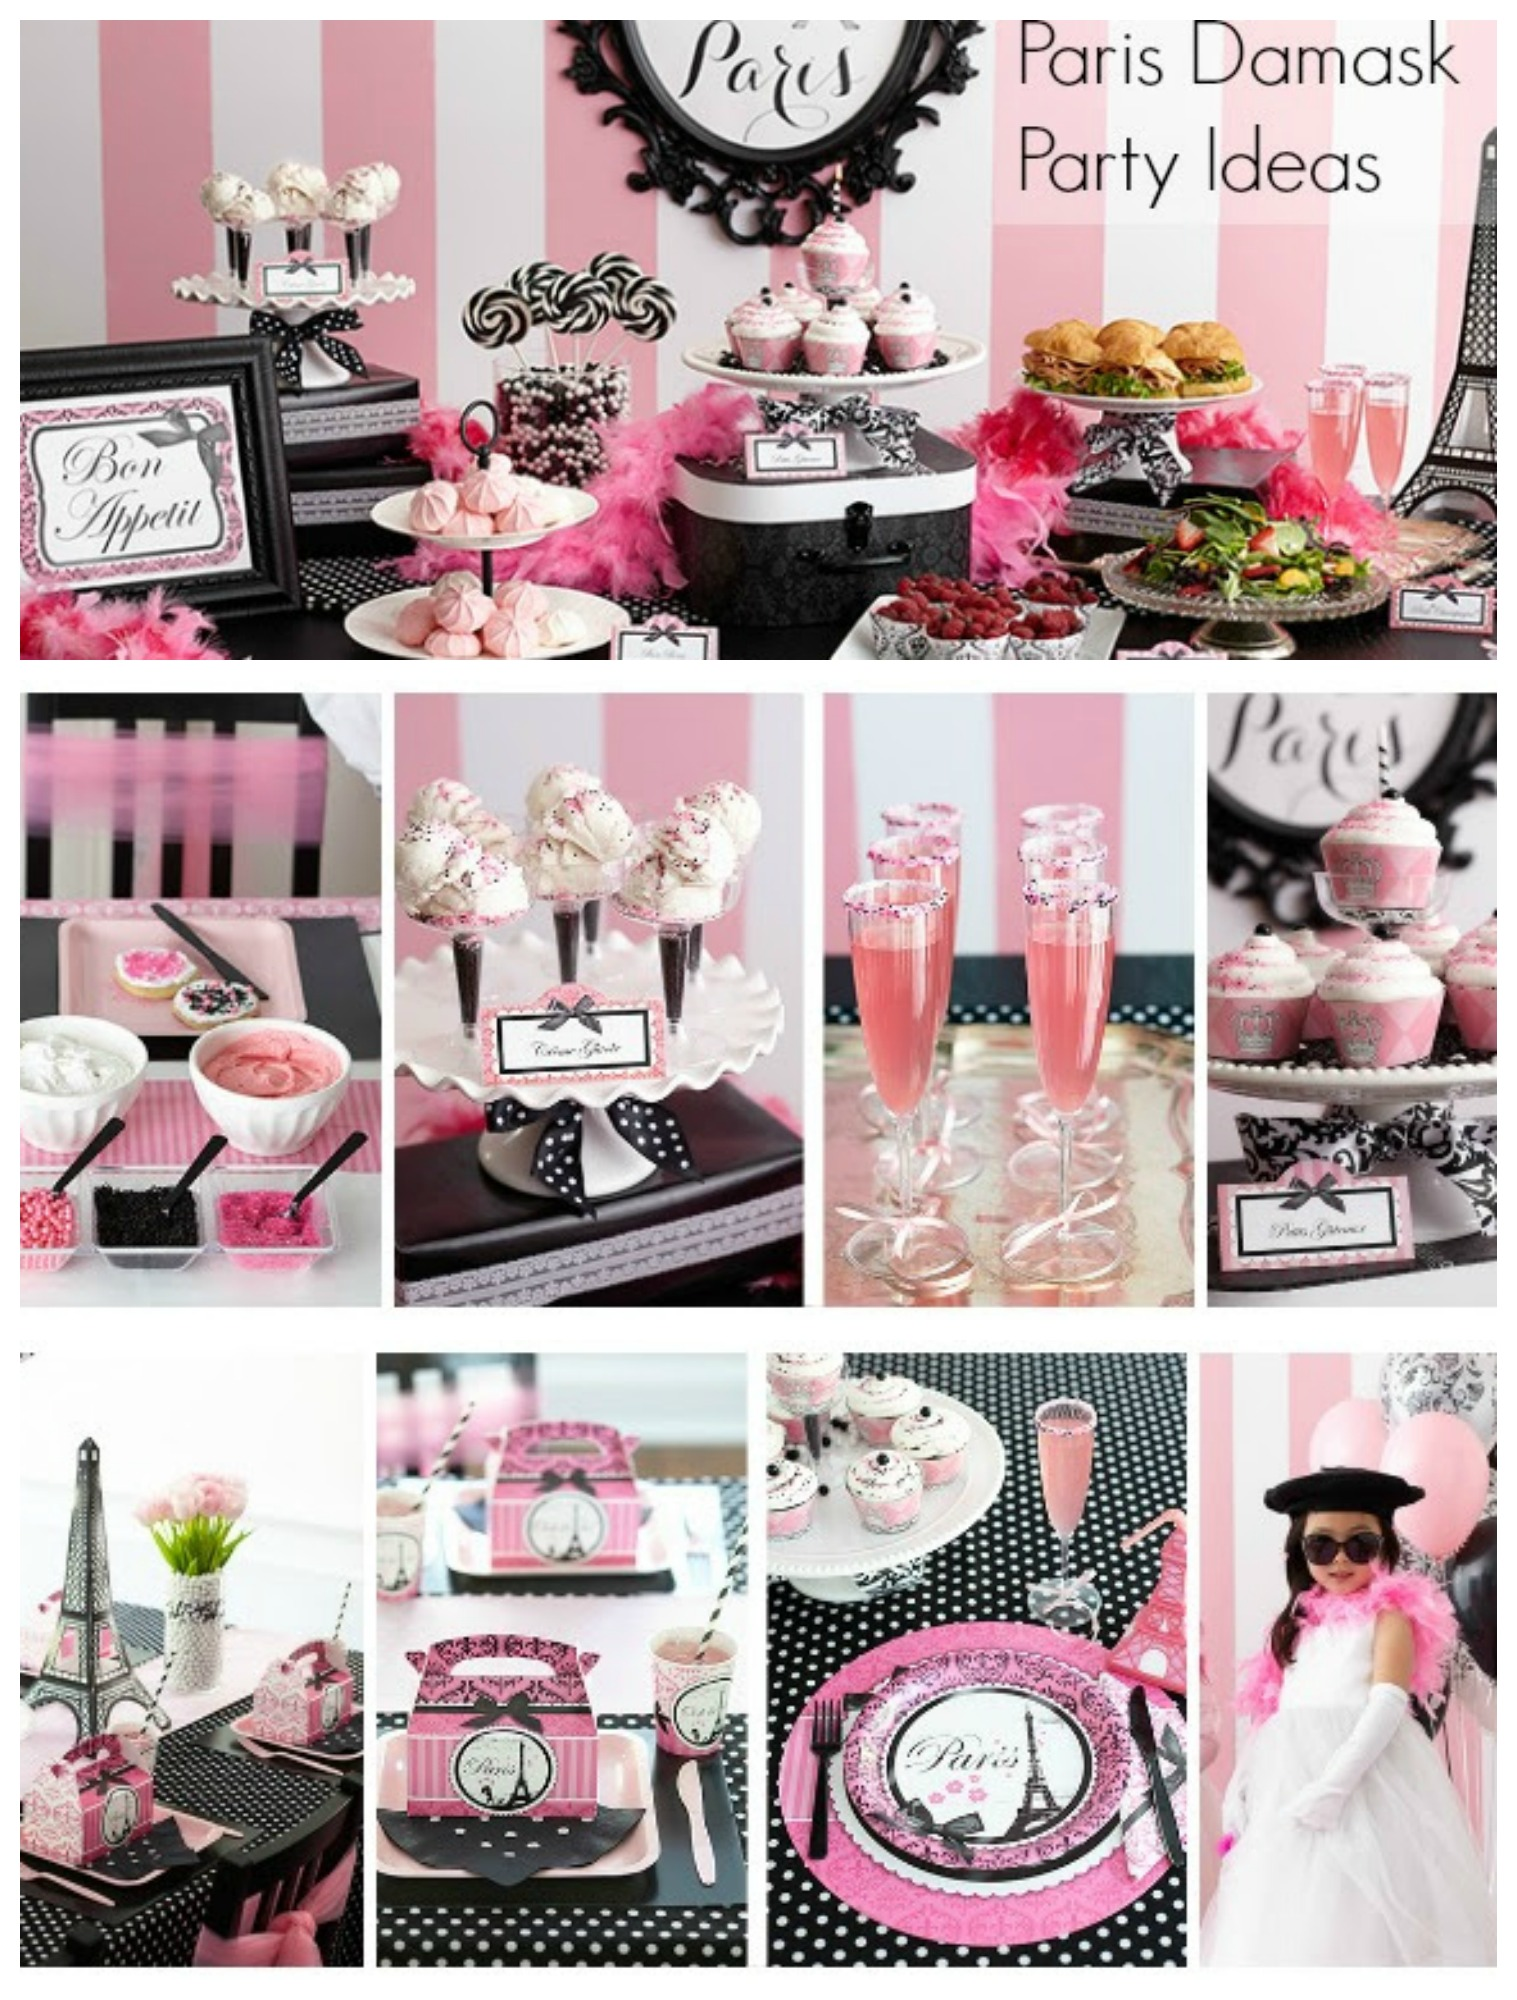 Paris themed birthday party ideas for French inspired party food